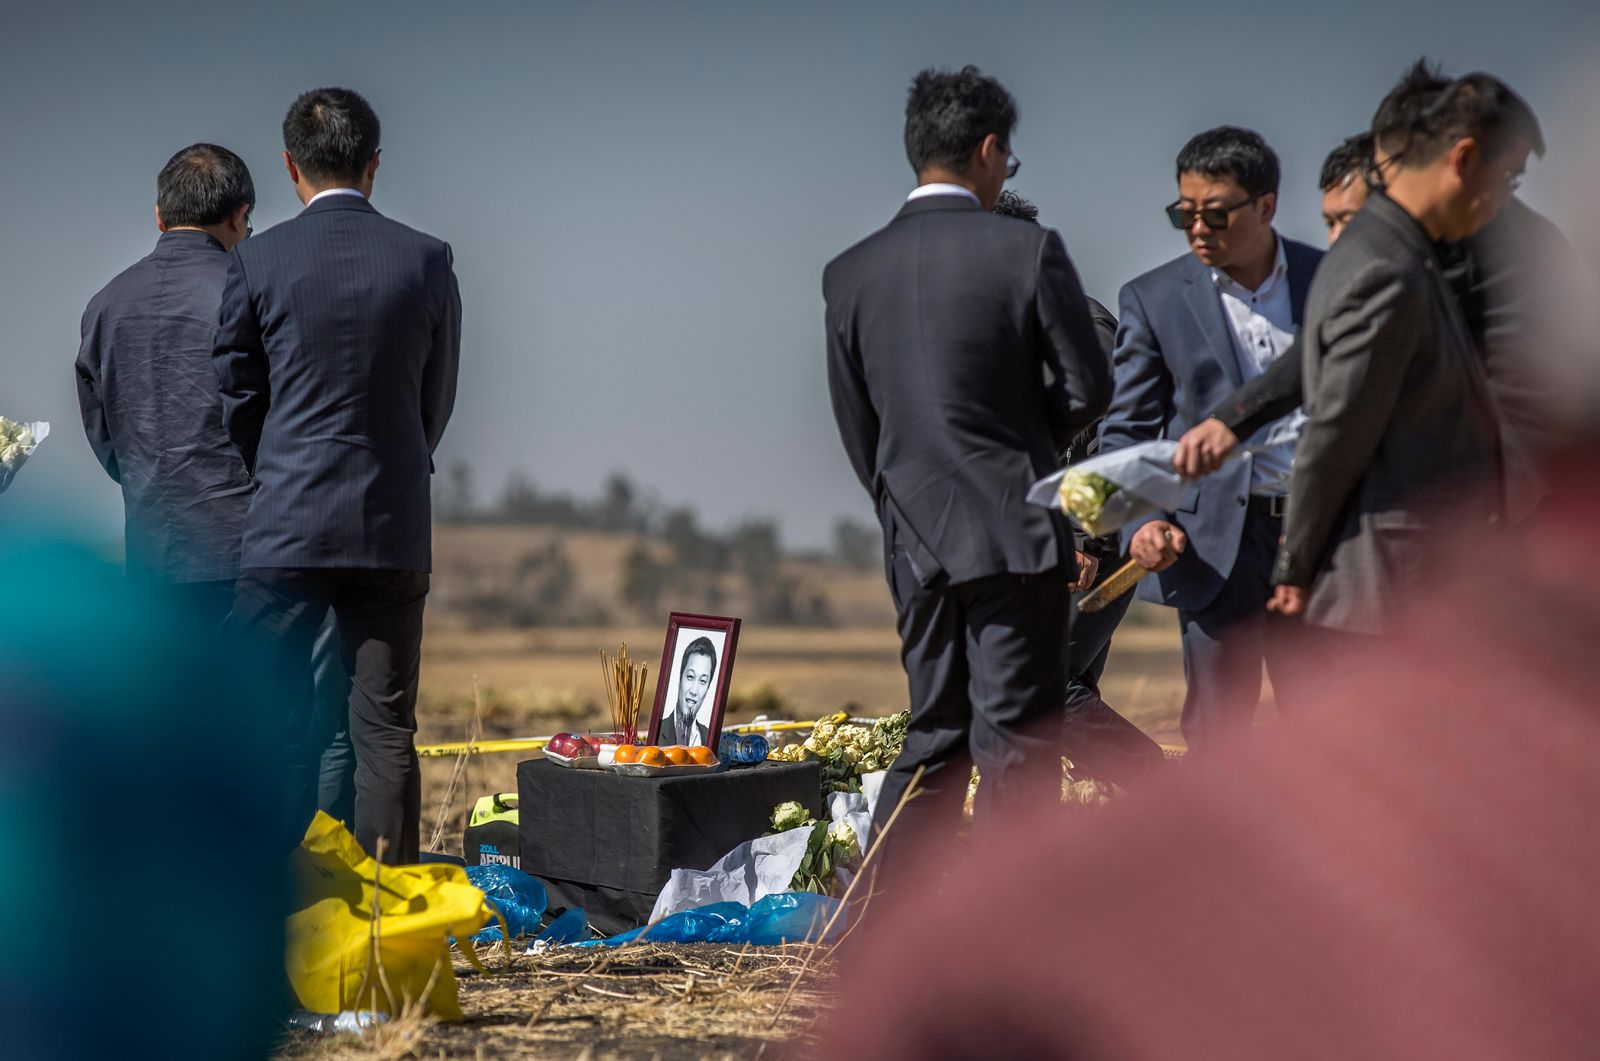 A photograph of a Chinese crash victim is placed next to incense and an offering of fruit, as relatives mourn and grieve at the scene where the Ethiopian Airlines Boeing 737 Max 8 crashed shortly after takeoff on Sunday killing all 157 on board, near Bishoftu, south-east of Addis Ababa, in Ethiopia Friday, March 15.. (AP Photo/Mulugeta Ayene)